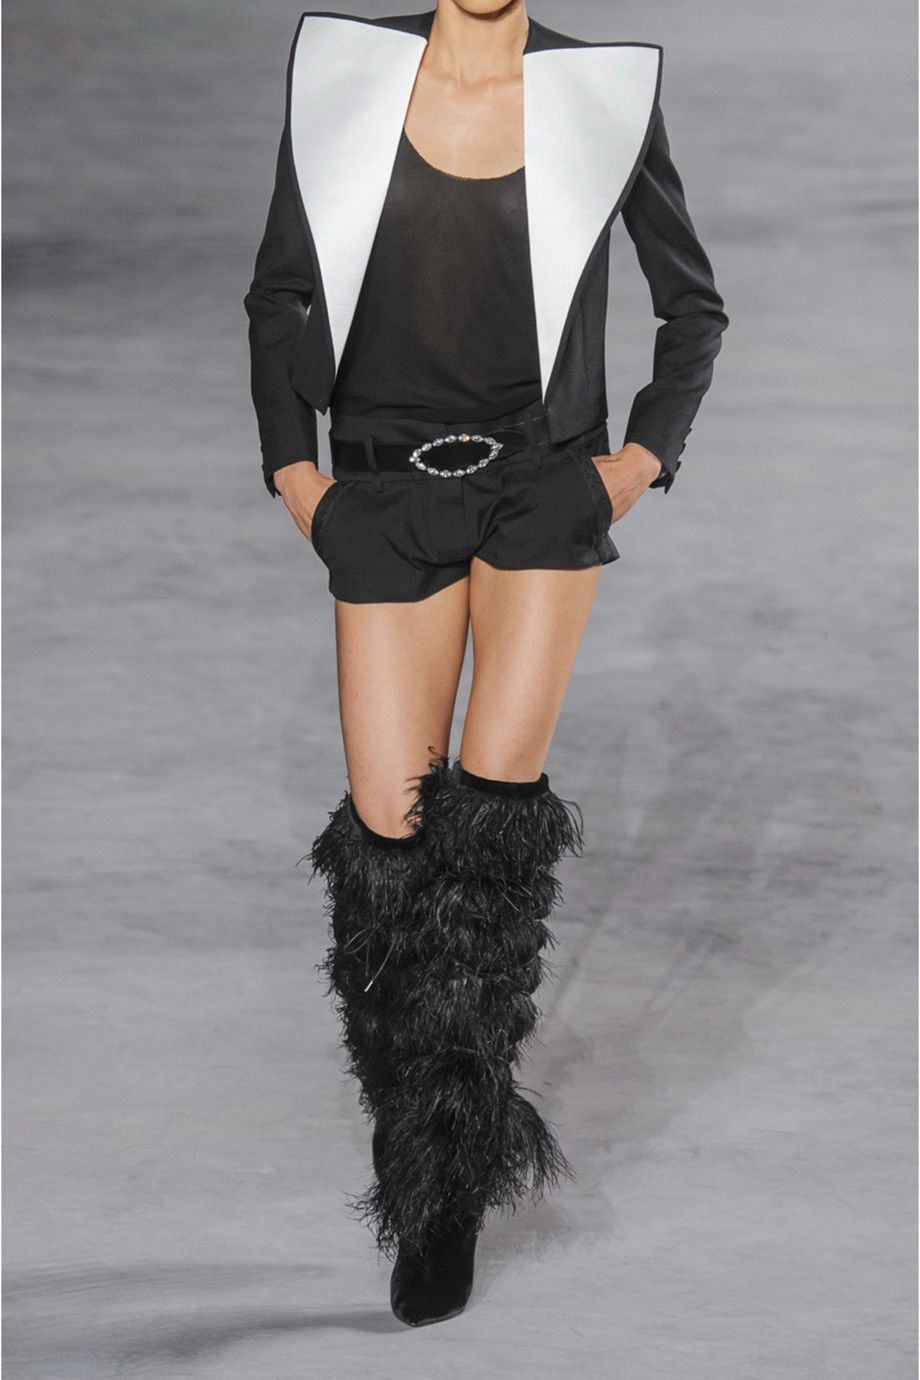 e51fc7402c4 YSL Saint Laurent Yeti Feather Over the Knee Boots | Daily style ...